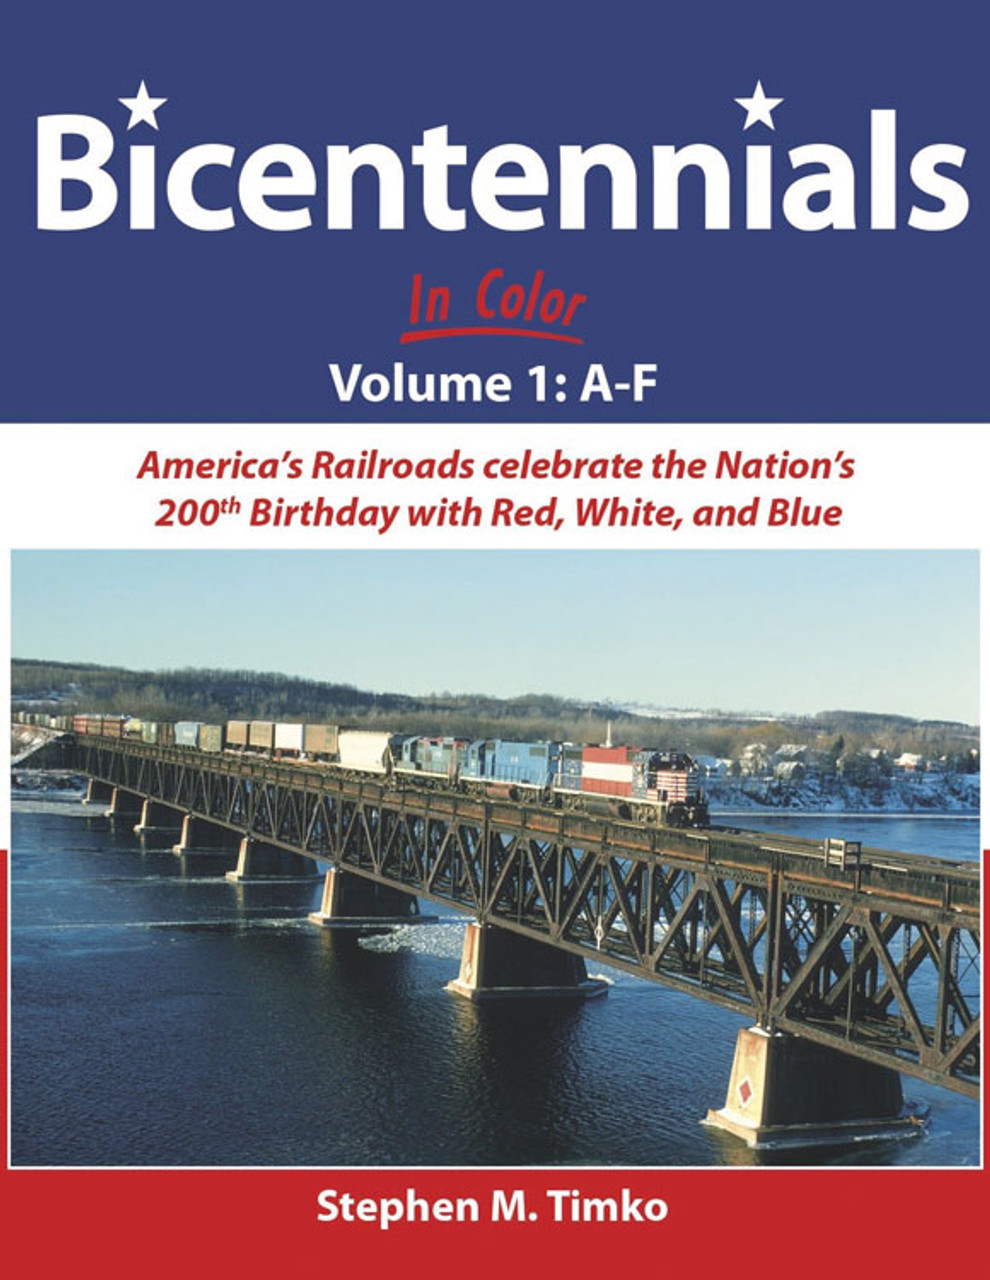 Bicentennials In Color -- Volume 1: A-F (Hardcover, 128 Pages)